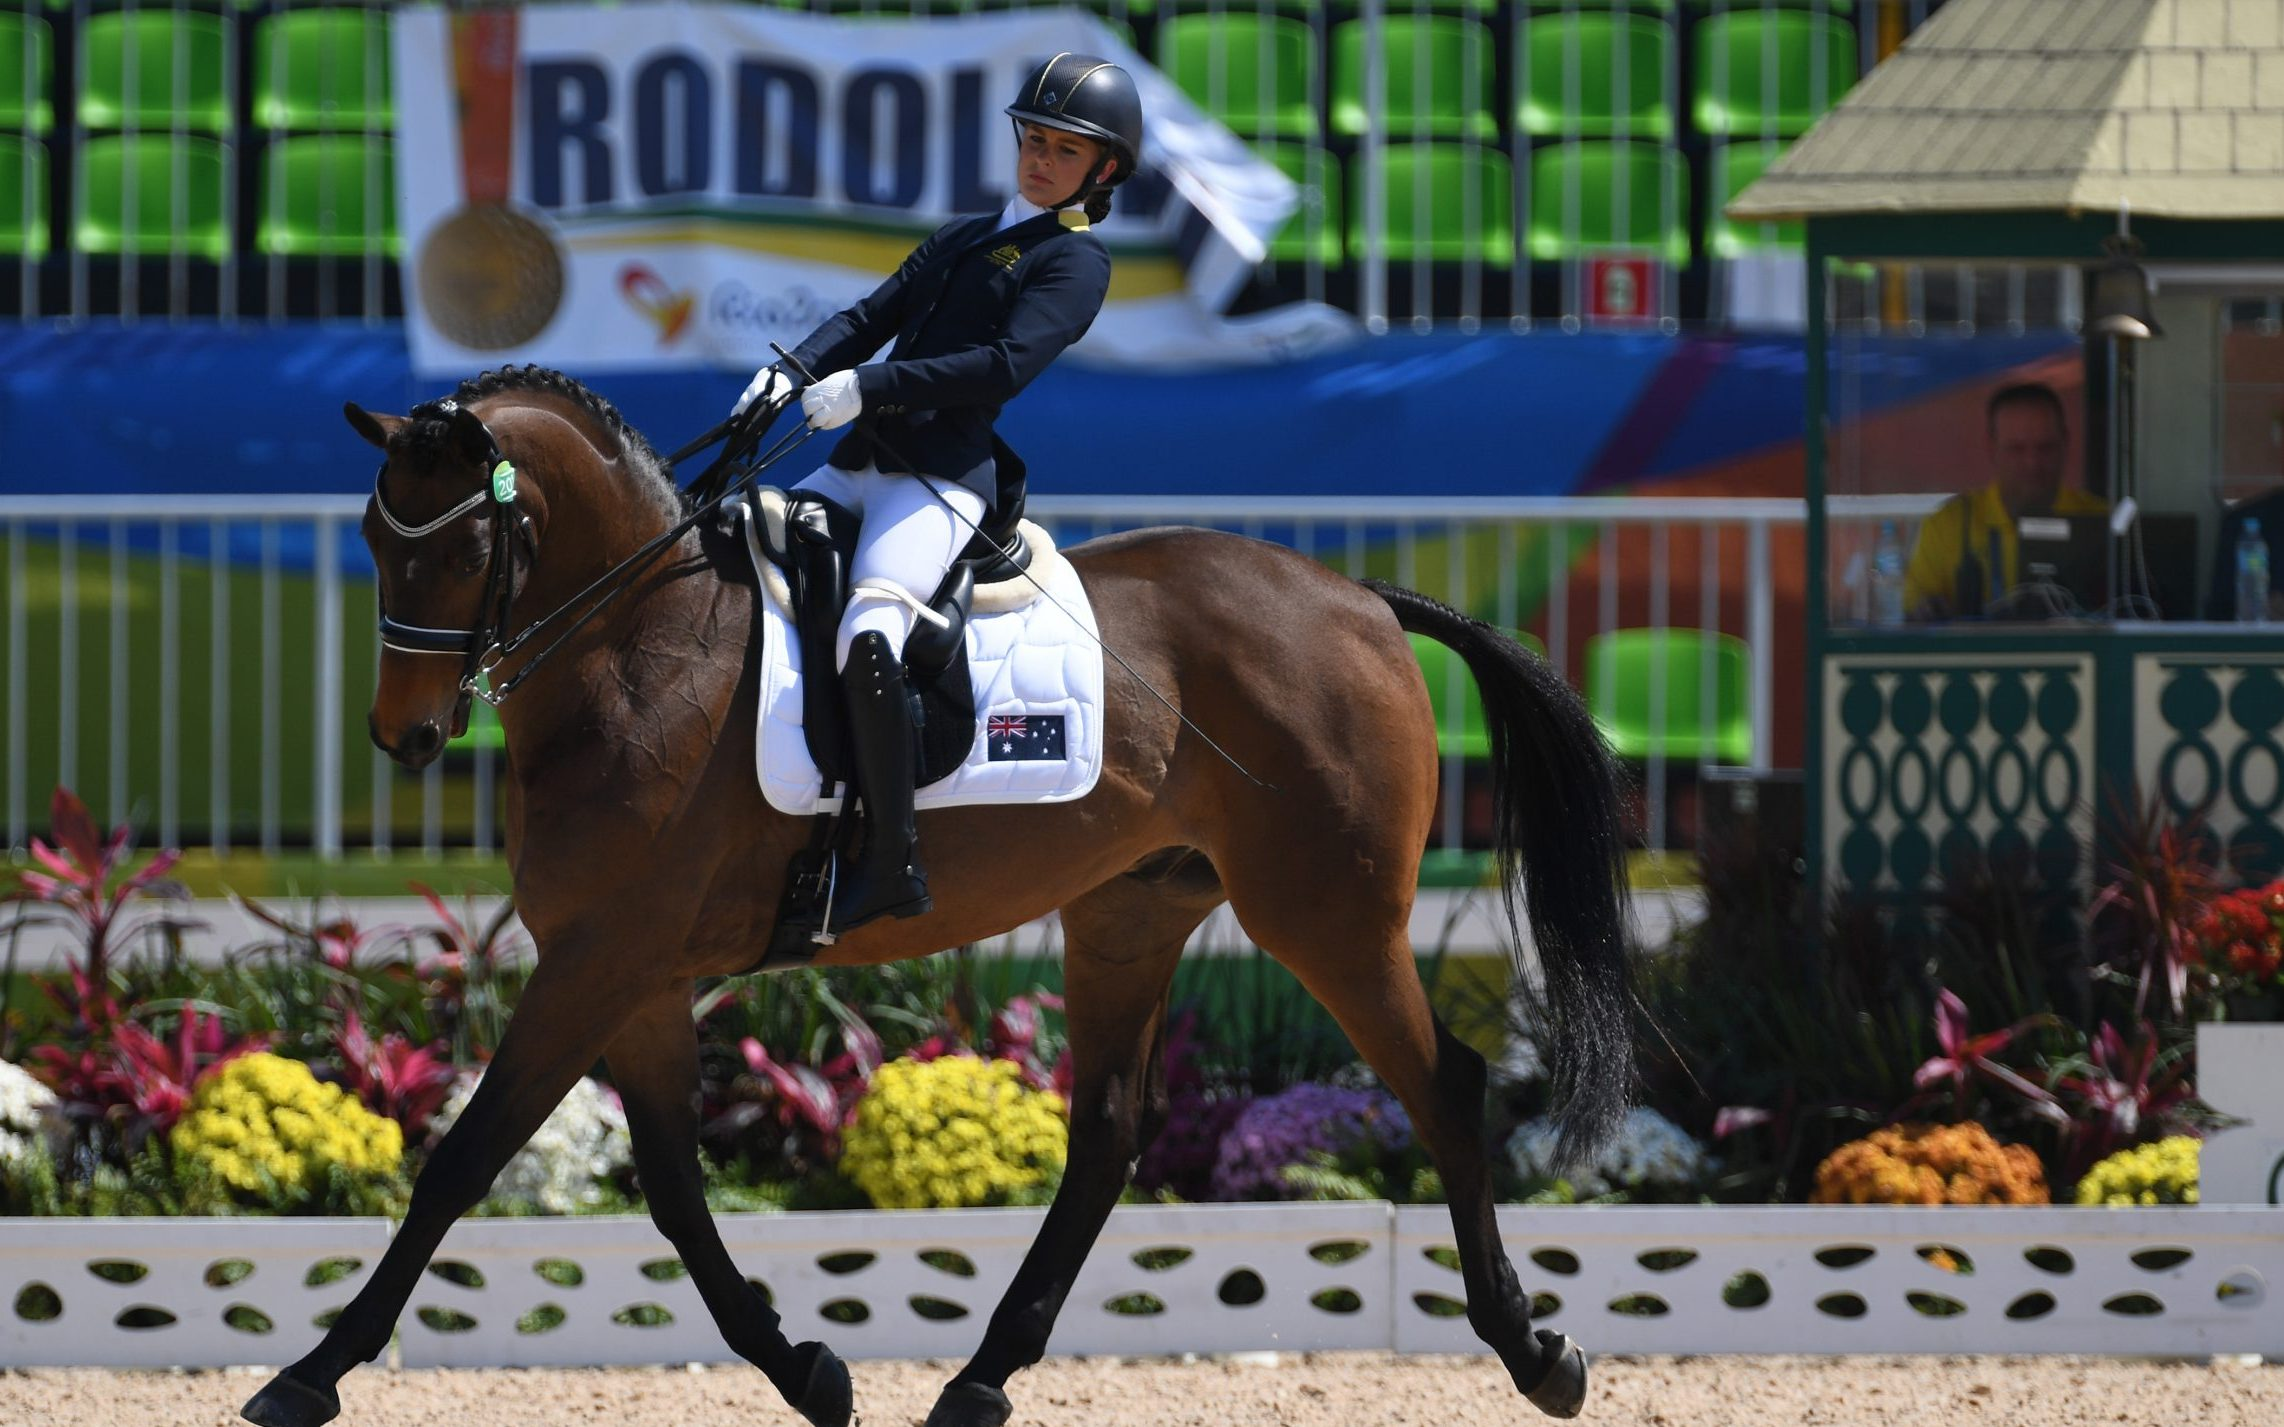 Emma Booth shortlisted for 2017 FEI Award